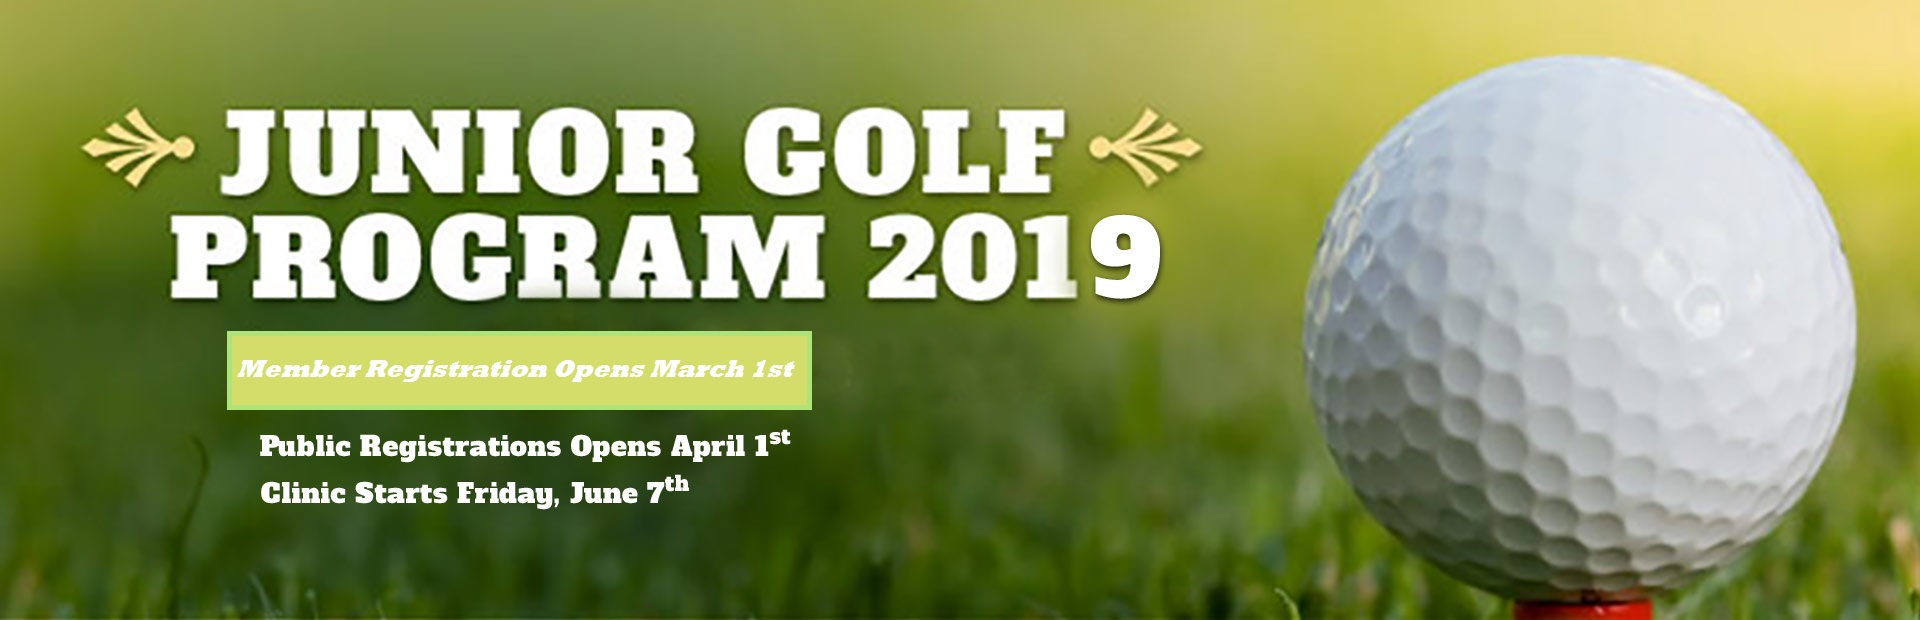 Junior Golf Program 2019: Click here for details.